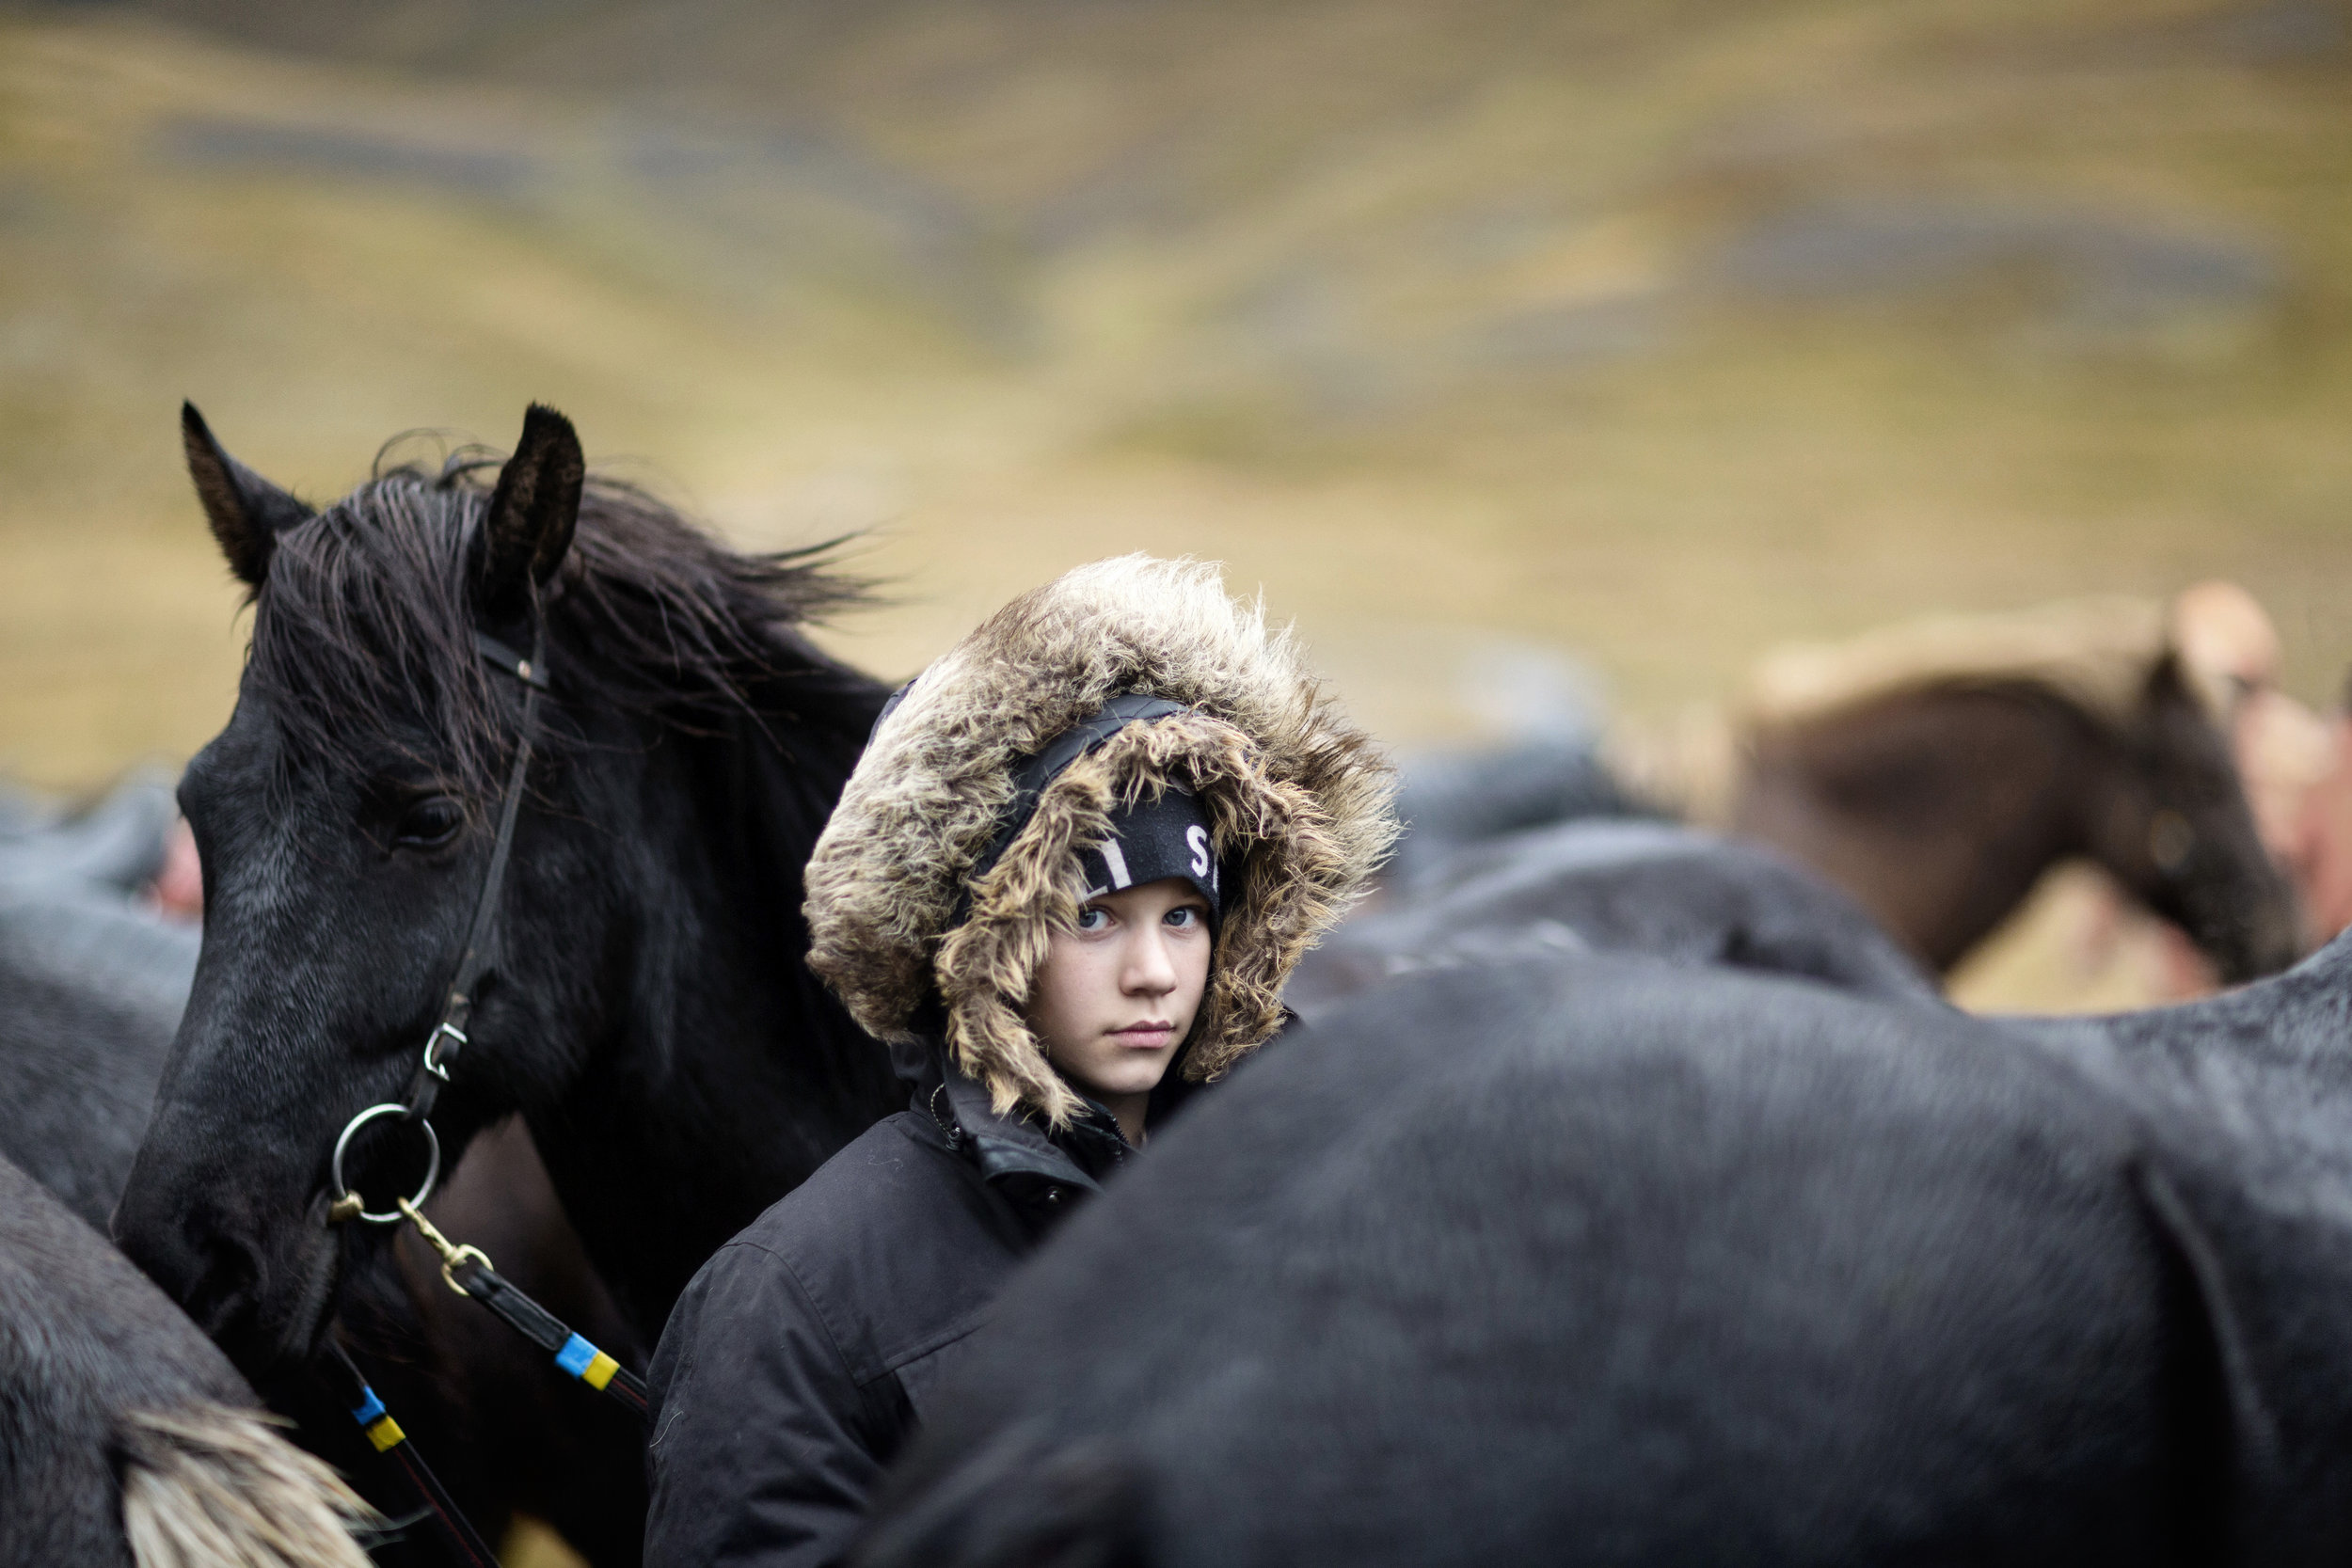 Northern Iceland - September 11th 2017:  A young local girl waits with her horses before the start of the round-up. Icelandic horses are the backbone and emblem of many northern Icelandic communities. This is for a travel story on Iceland's sheep roundup.